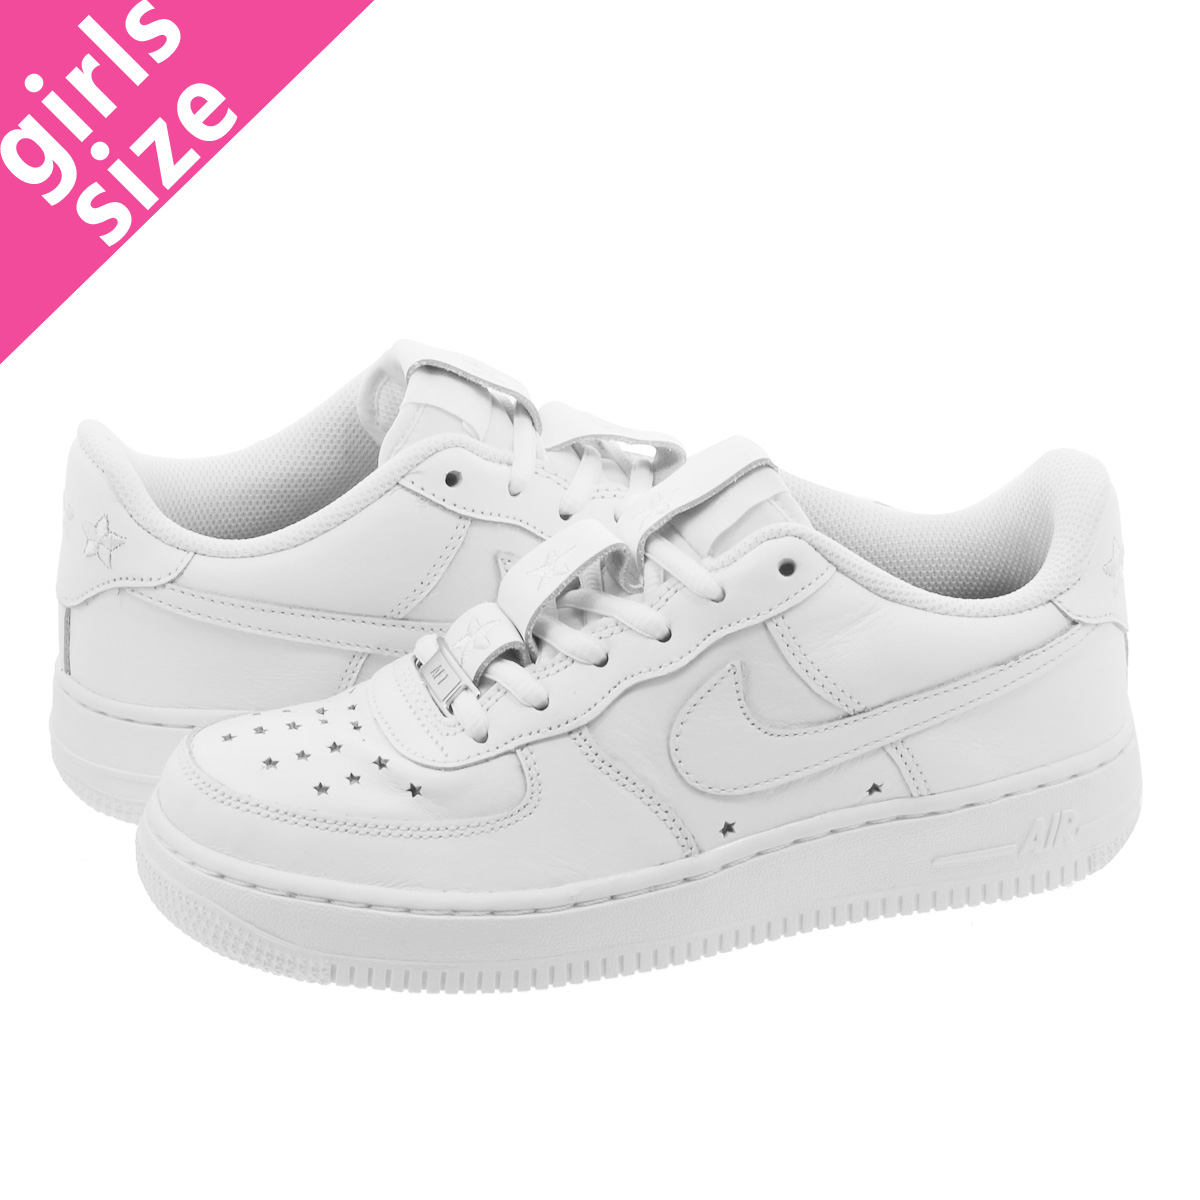 NIKE AIR FORCE 1 LOW 【INDEPENDENCE DAY PACK】 ナイキ エア フォース 1 ロー WHITE/MIDNIGHT NAVY ar0688-100